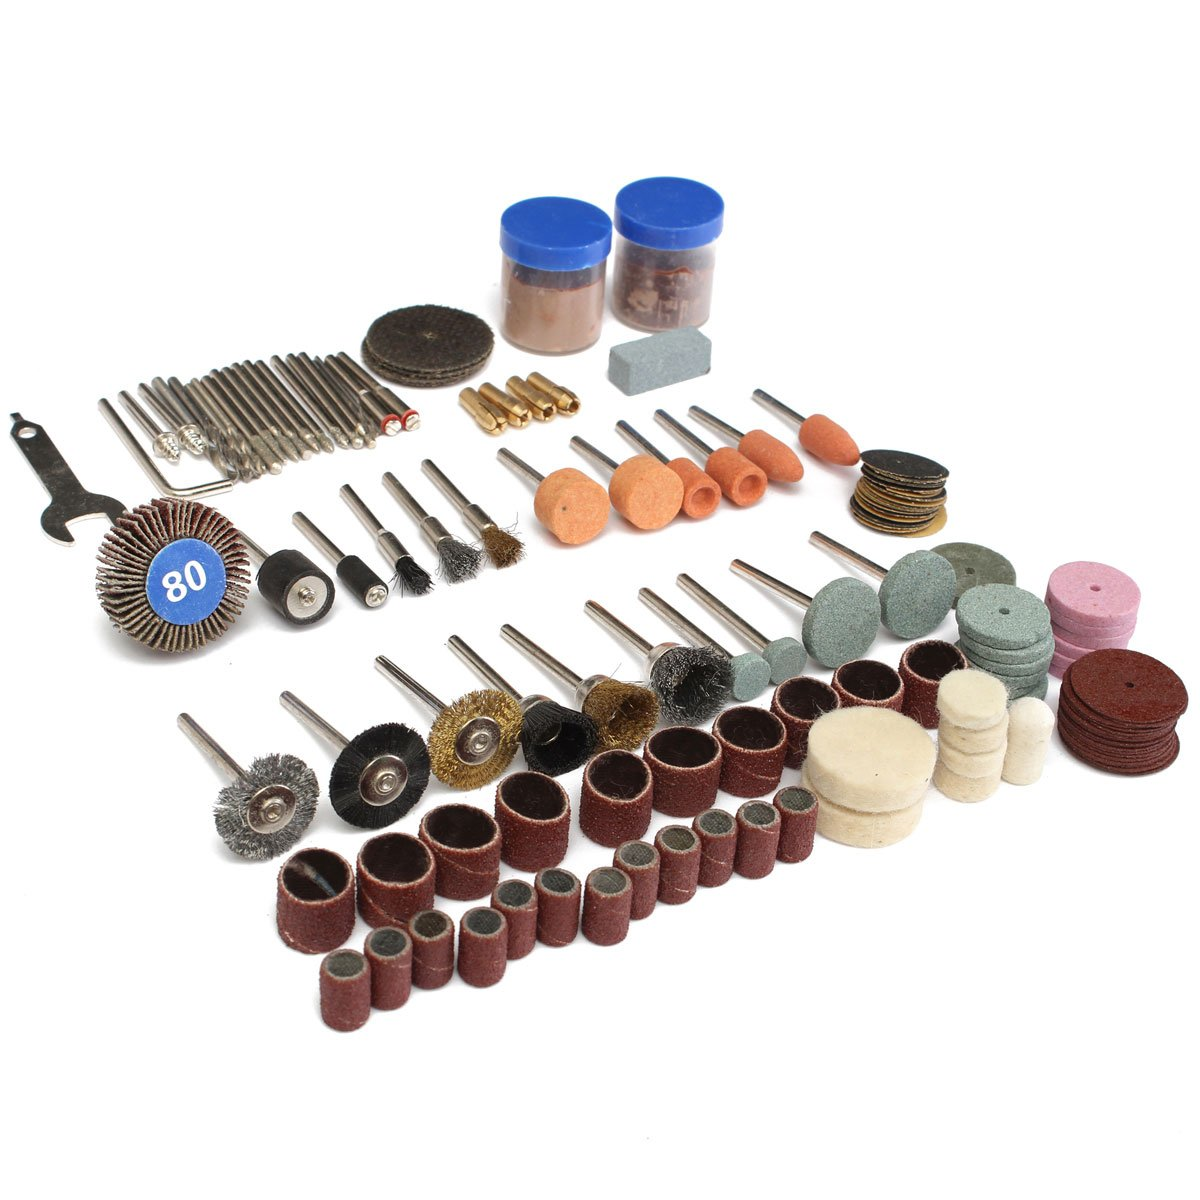 Kamas 136pcs Rotary Tool Accessories Bit Set Polishing Kits Polishing Wheel for Dremel